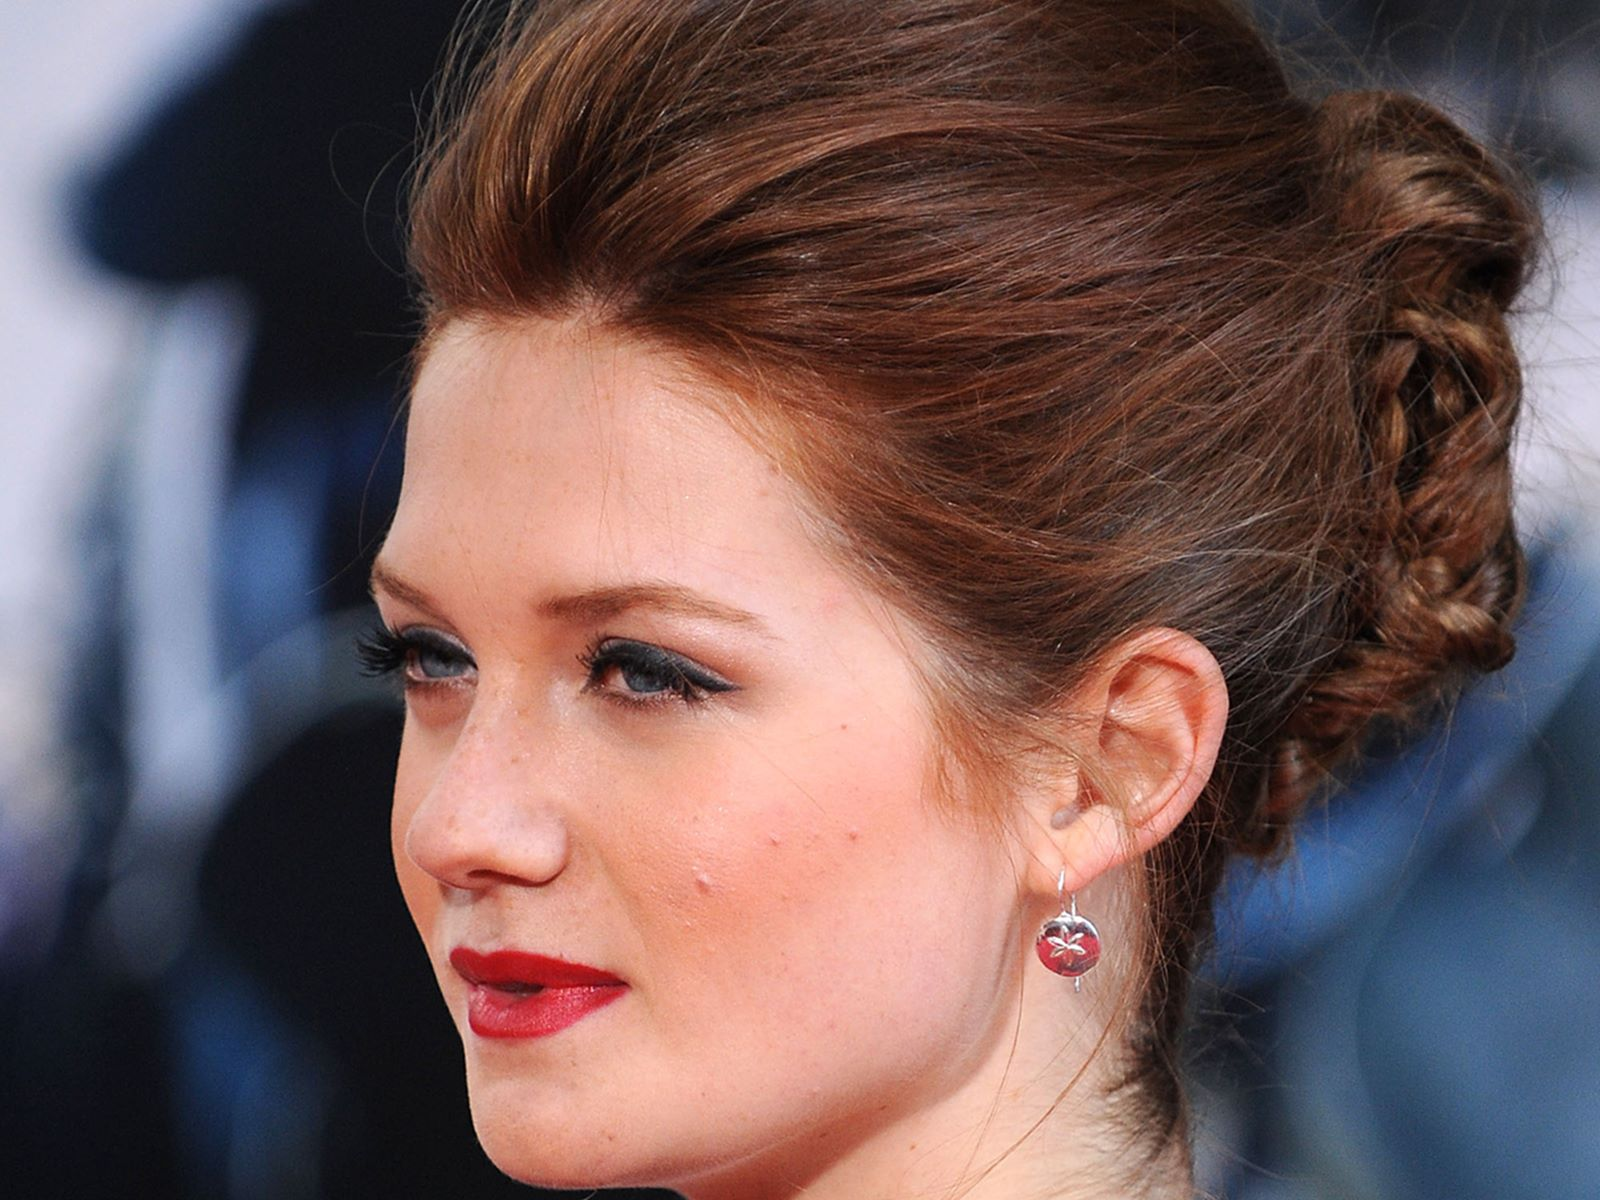 bonnie wright side face desktop download nice wallpapers